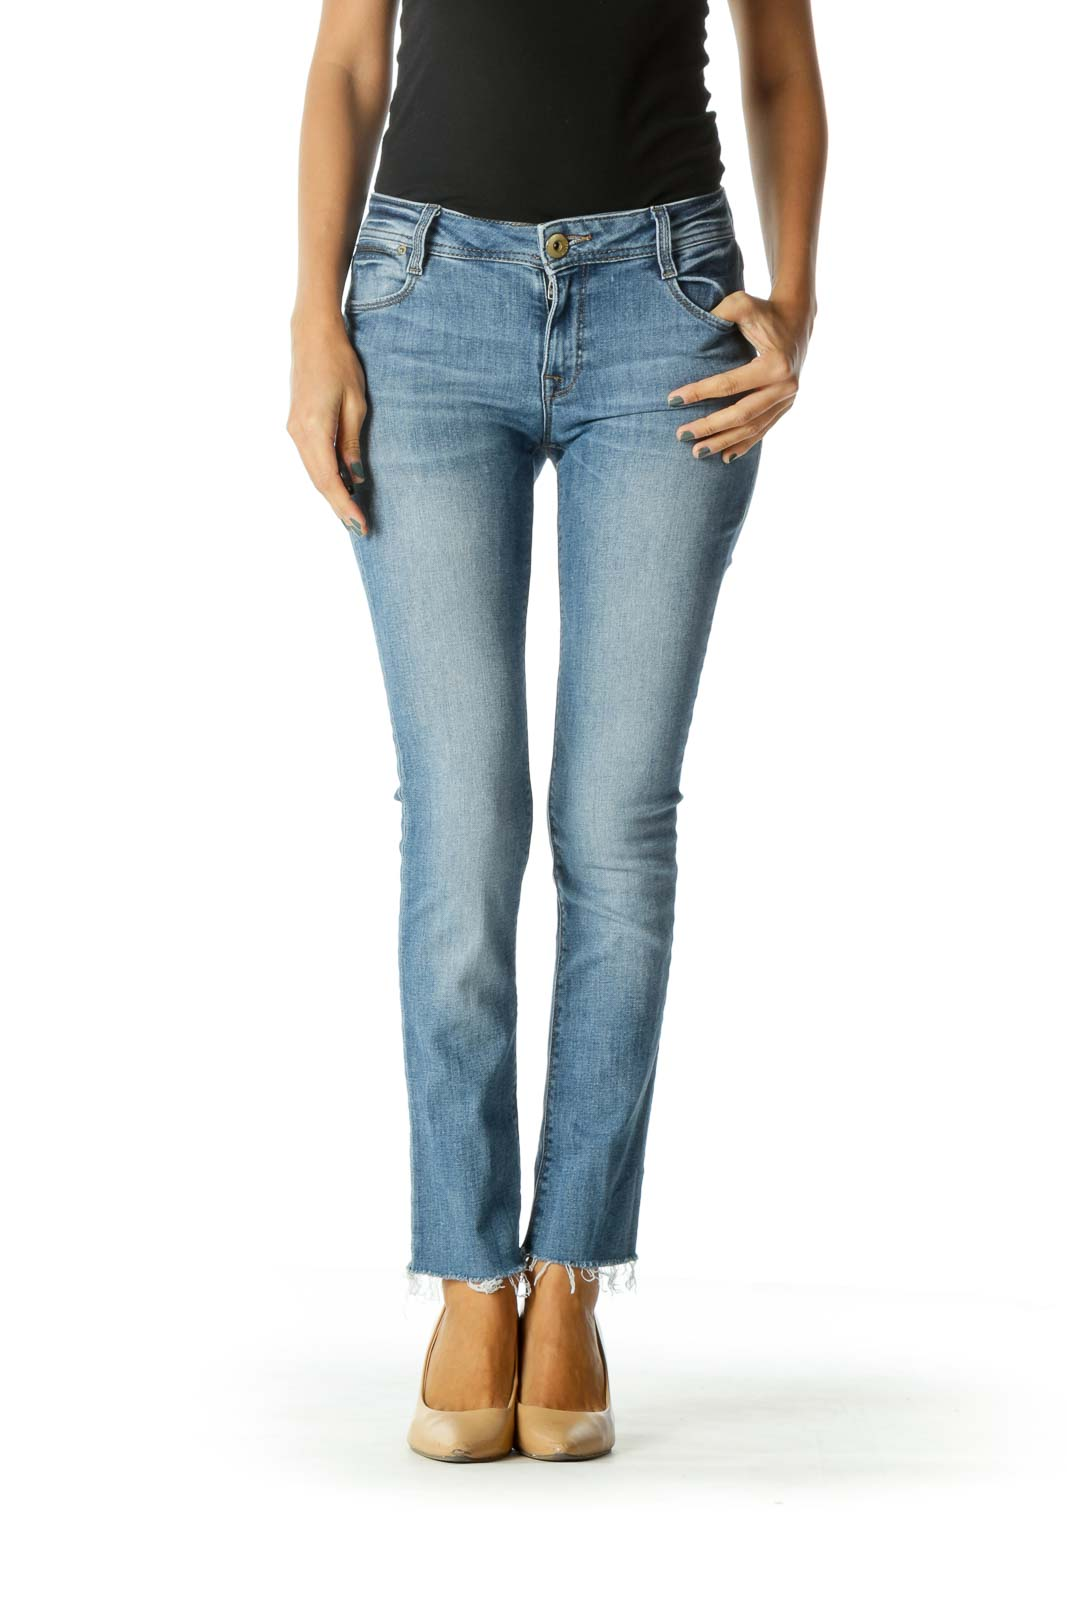 Blue Light Wash Stretch High Rise Raw Hem Denim Jeans